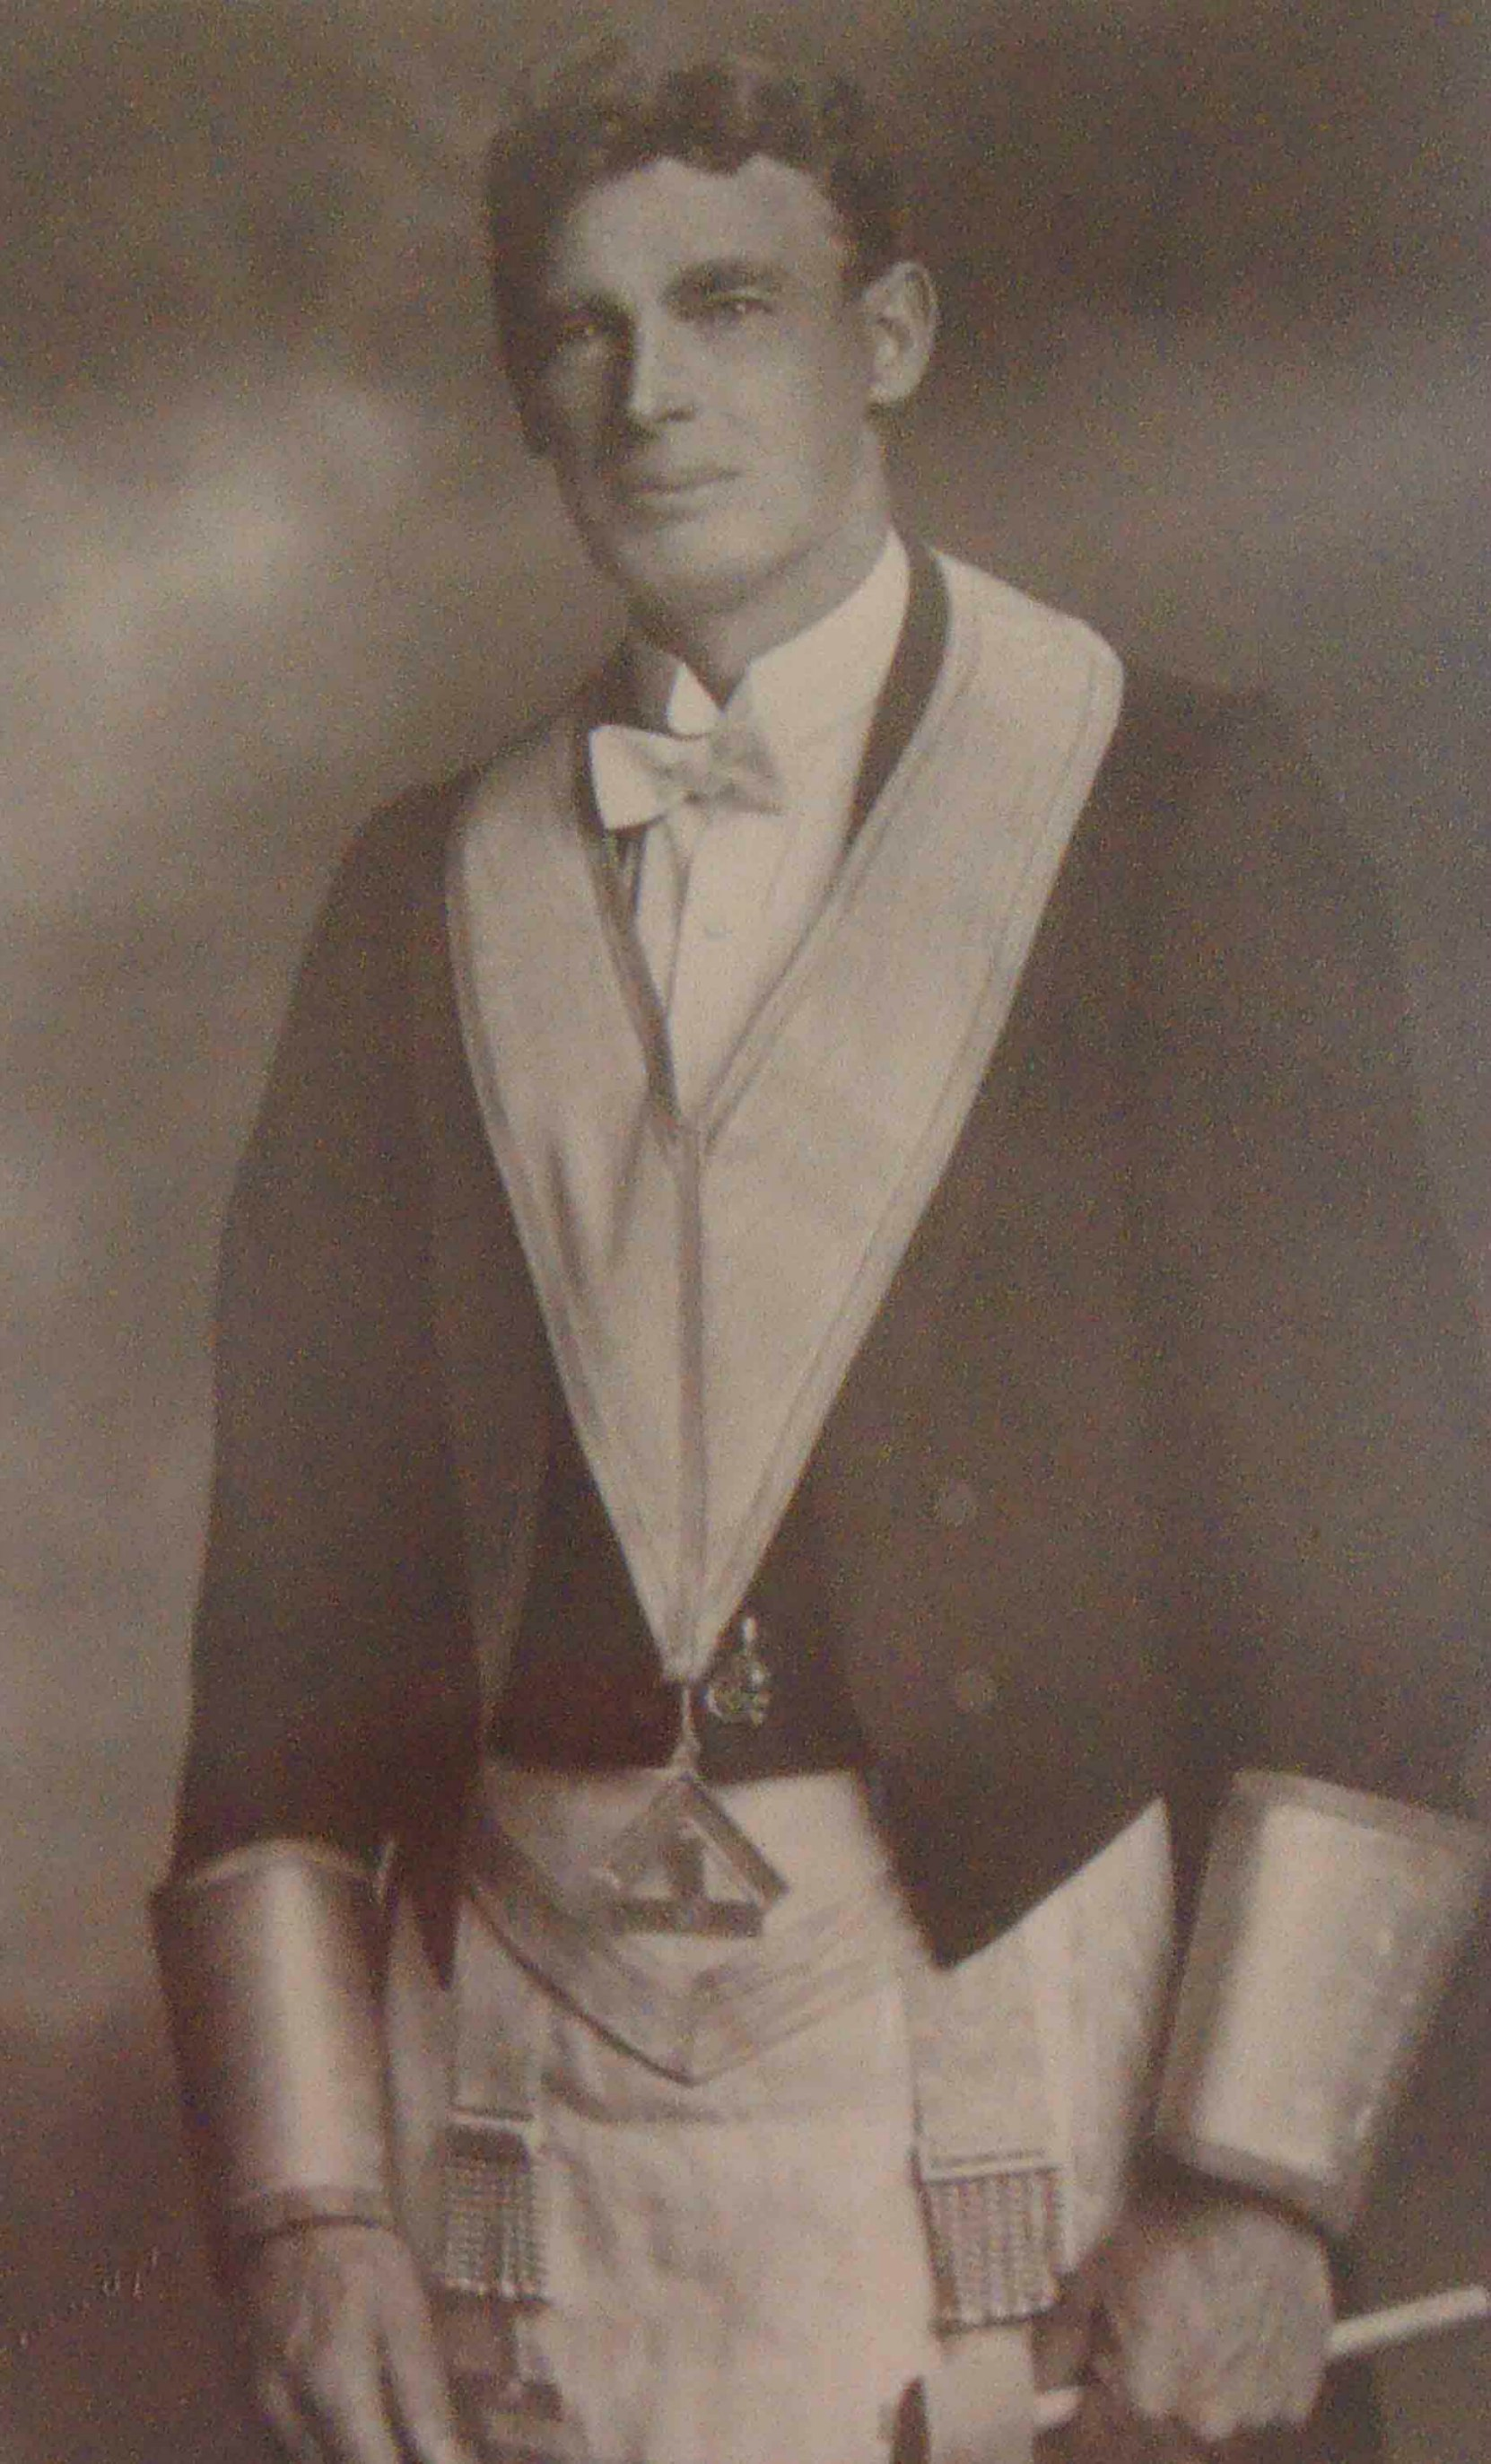 Albert Edward Green as Worshipful Master of Temple Lodge, No.33 in 1927